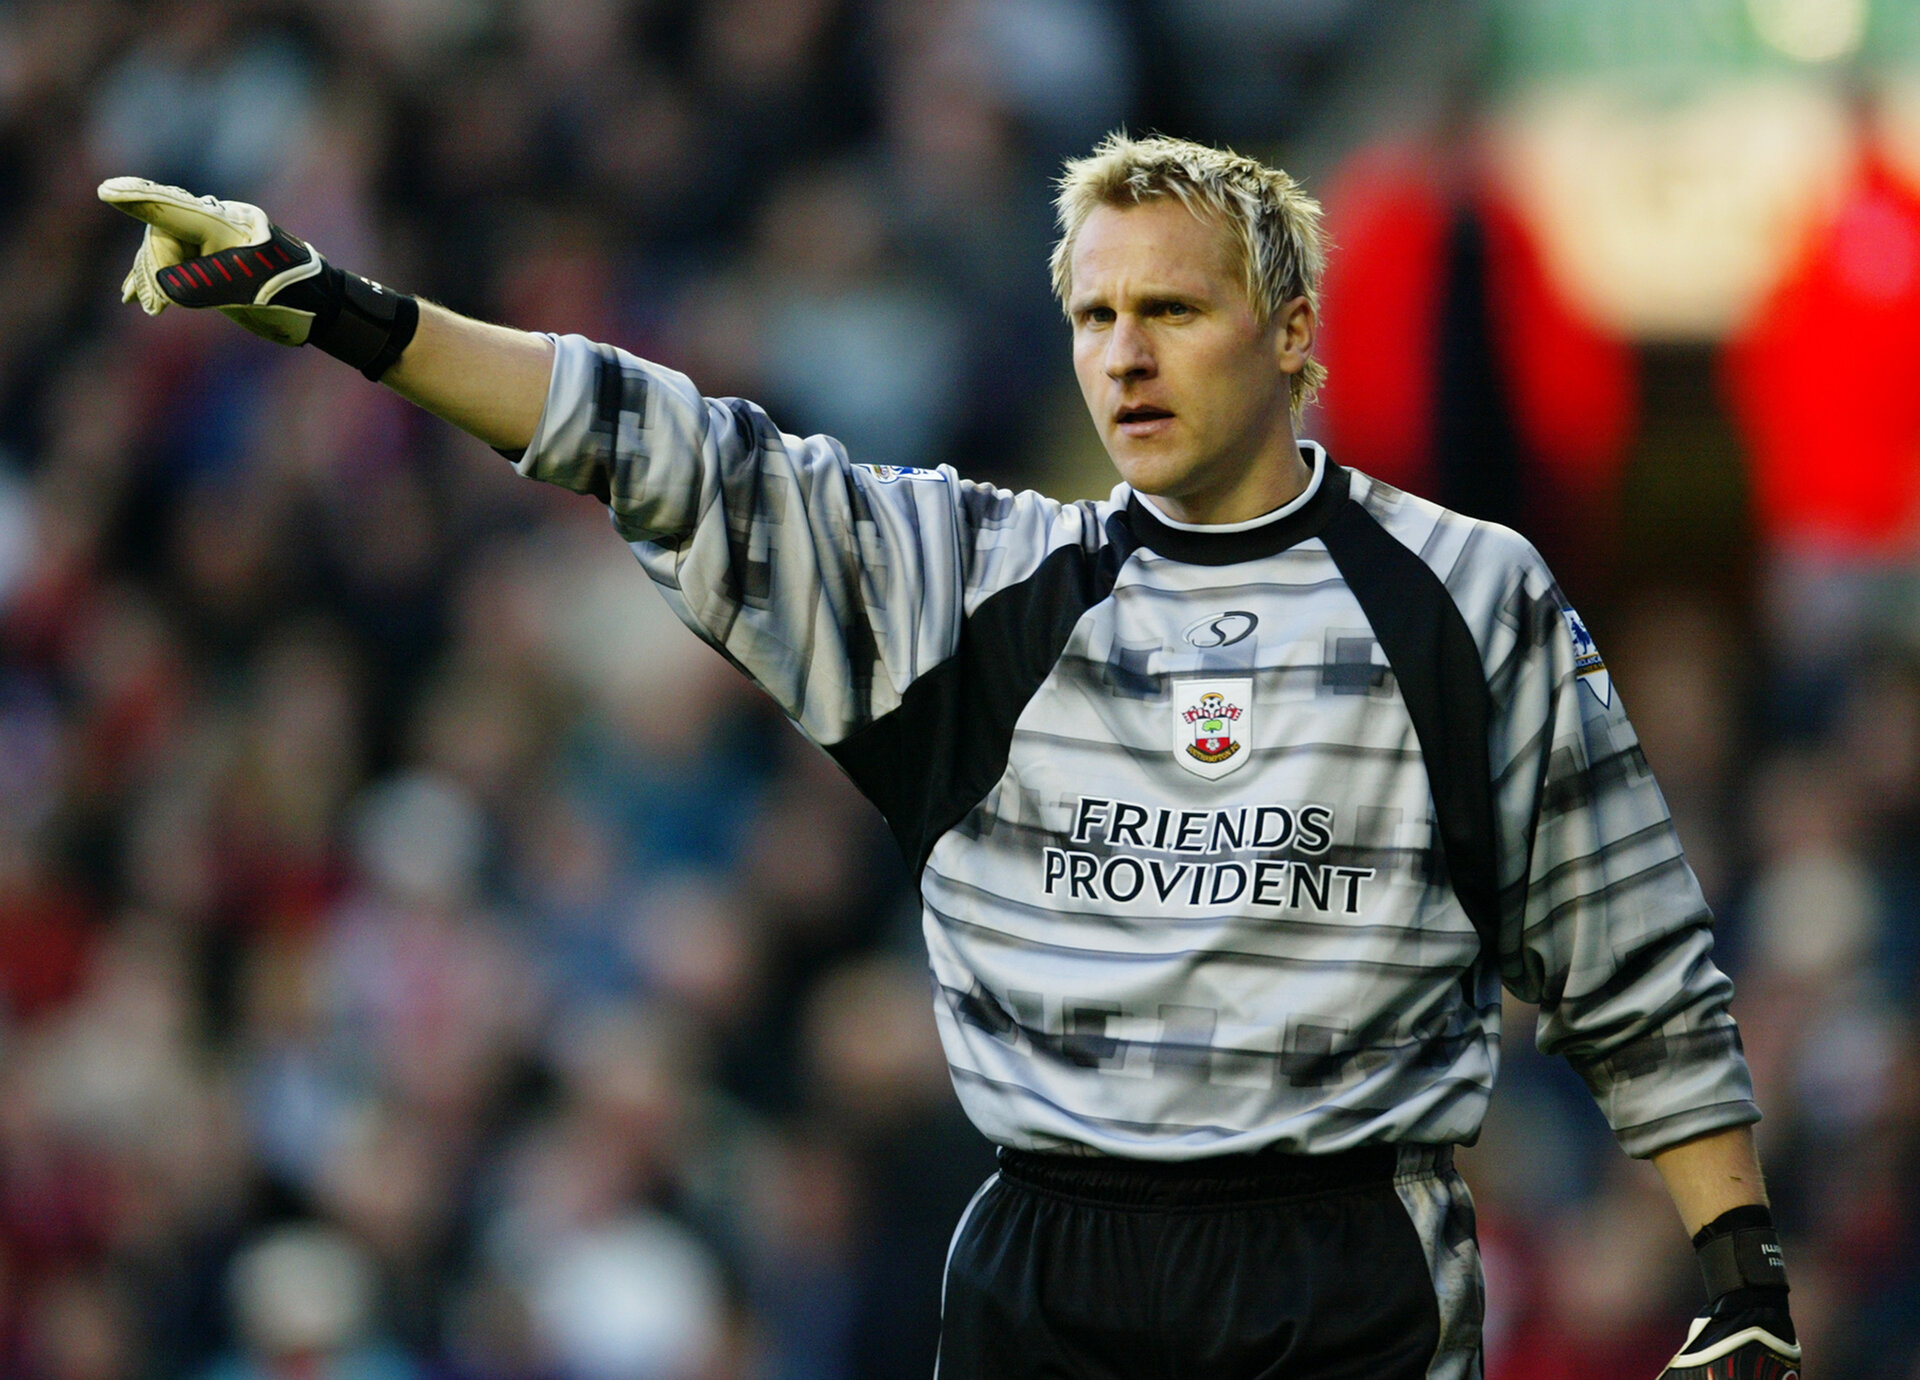 LIVERPOOL - DECEMBER 13:  Antti Niemi of Southampton signals to a team mate during the FA Barclaycard Premiership match between Liverpool and Southampton on December 13, 2003 at Anfield in Liverpool, England.  Southampton won the match 2-1.  (Photo by Gary M.Prior/Getty Images)